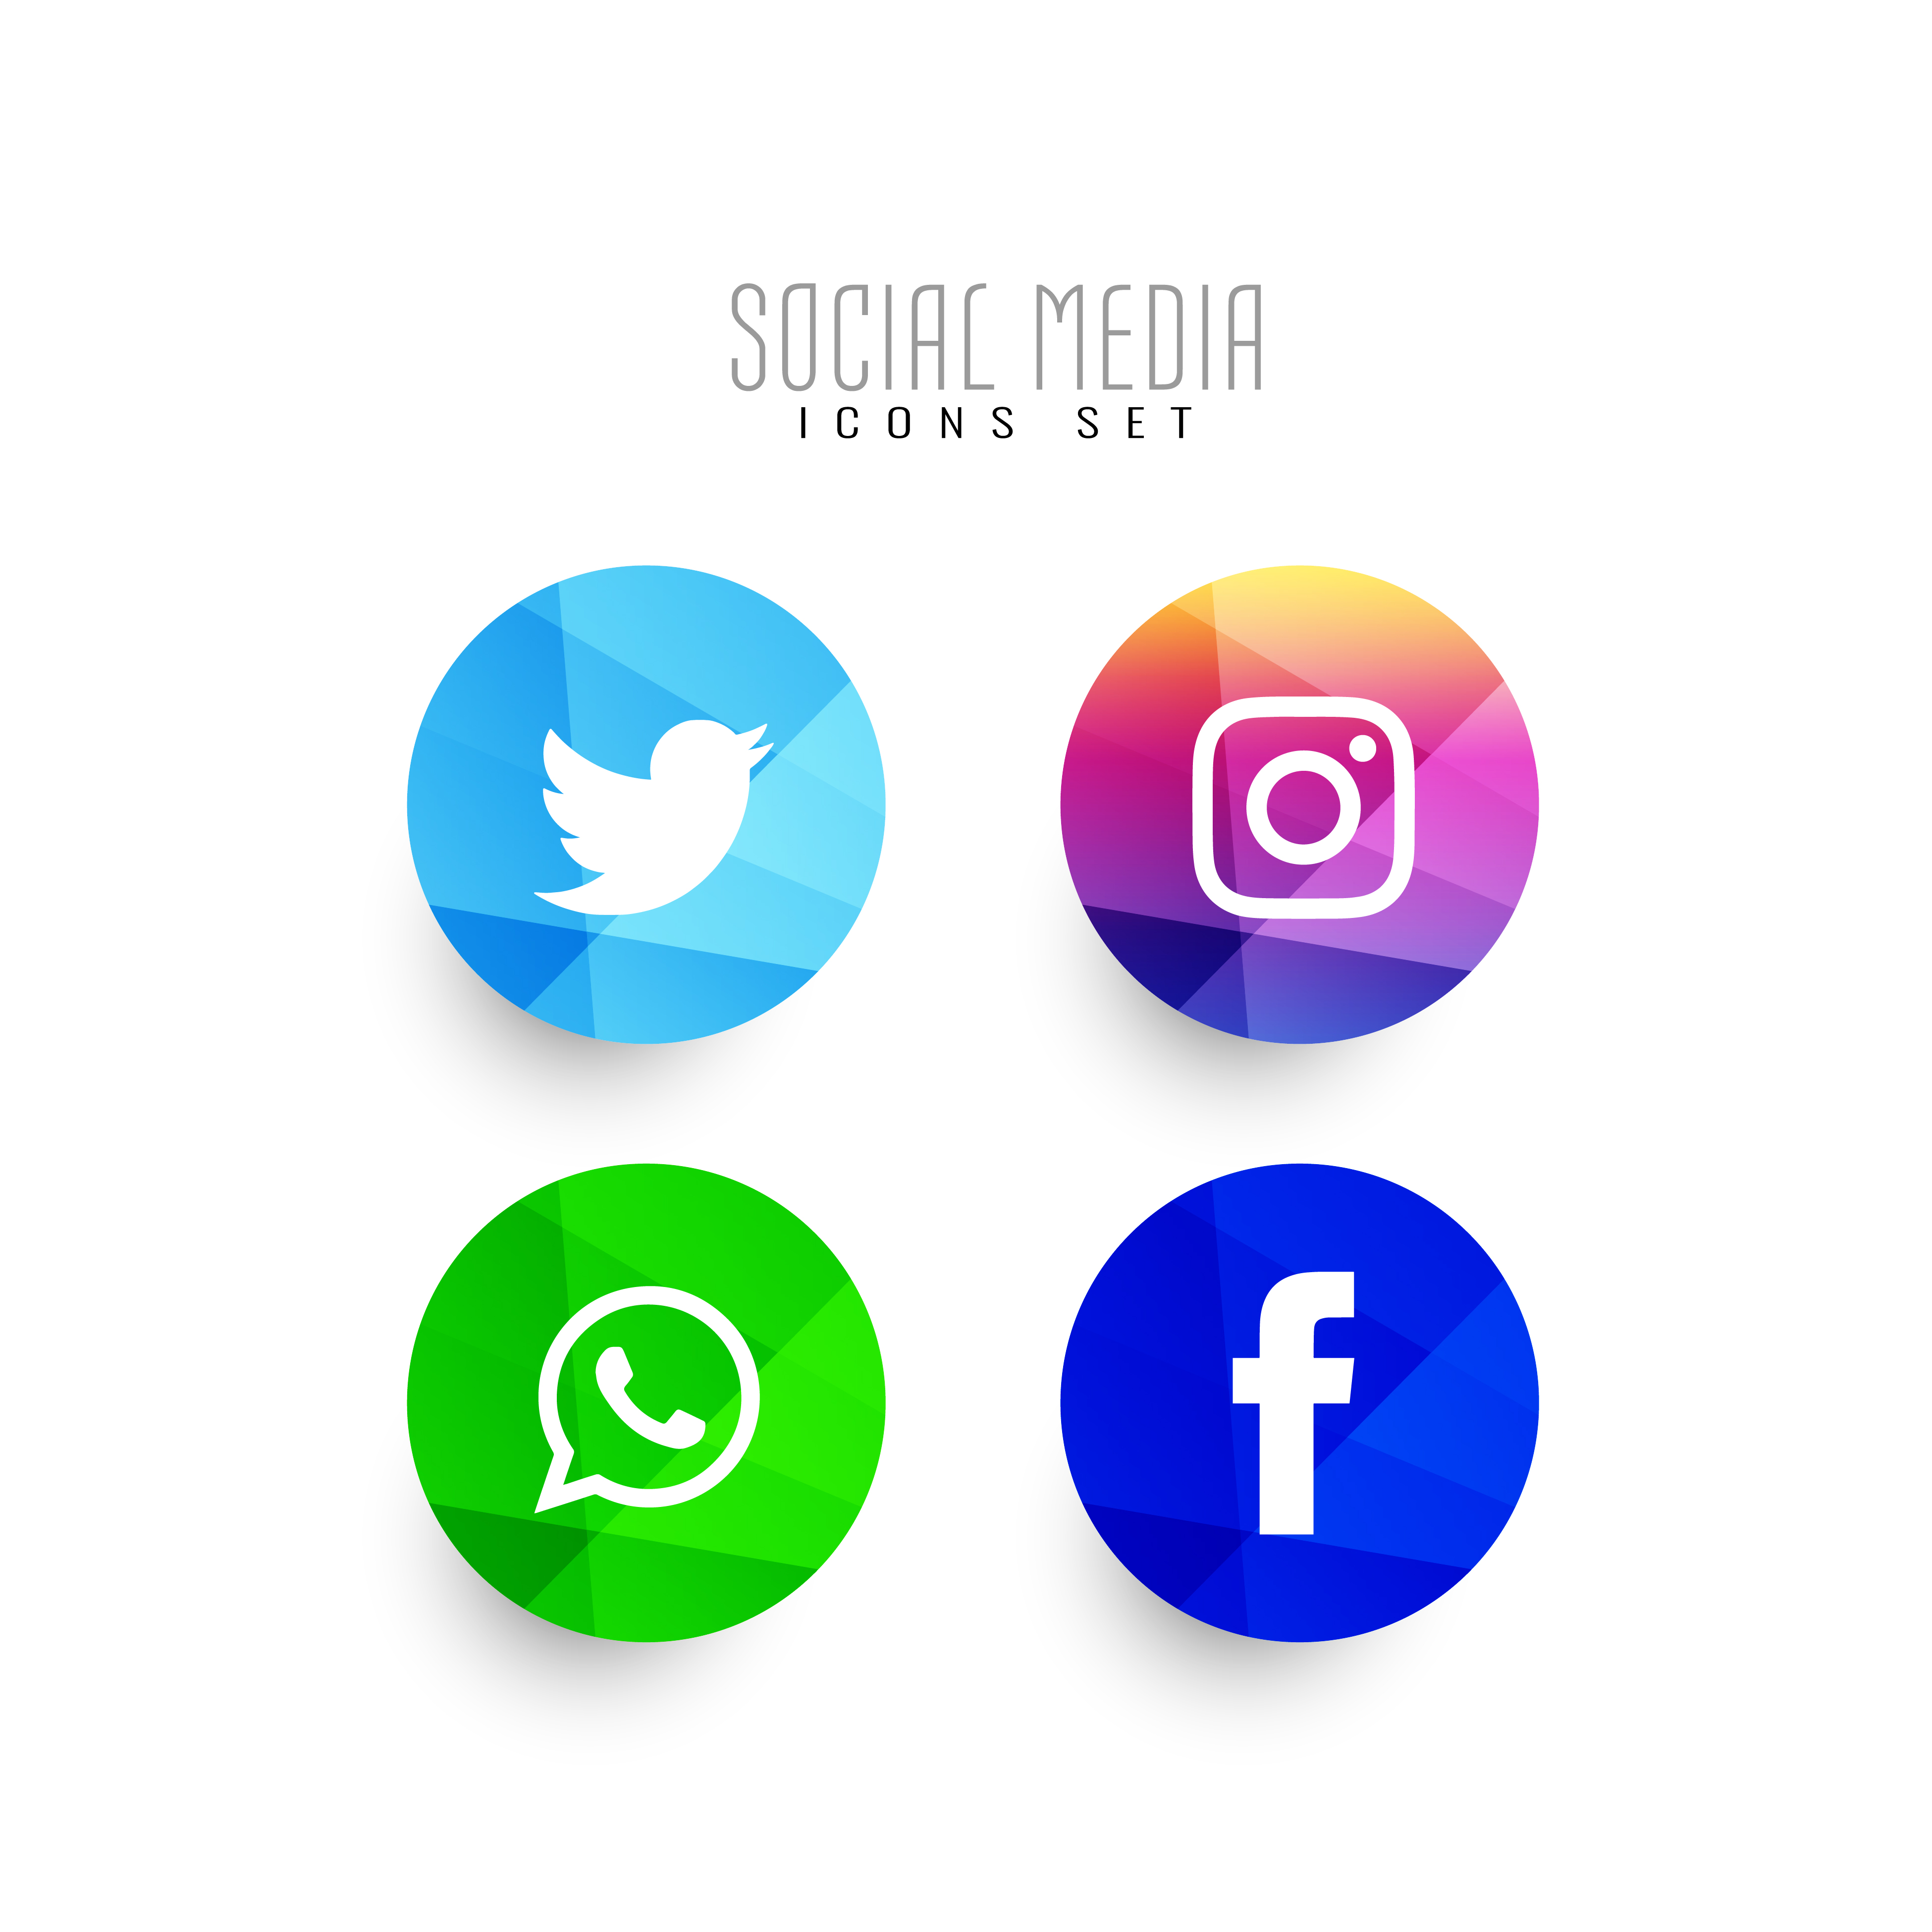 vector-abstract-modern-social-media-icons-set.jpg